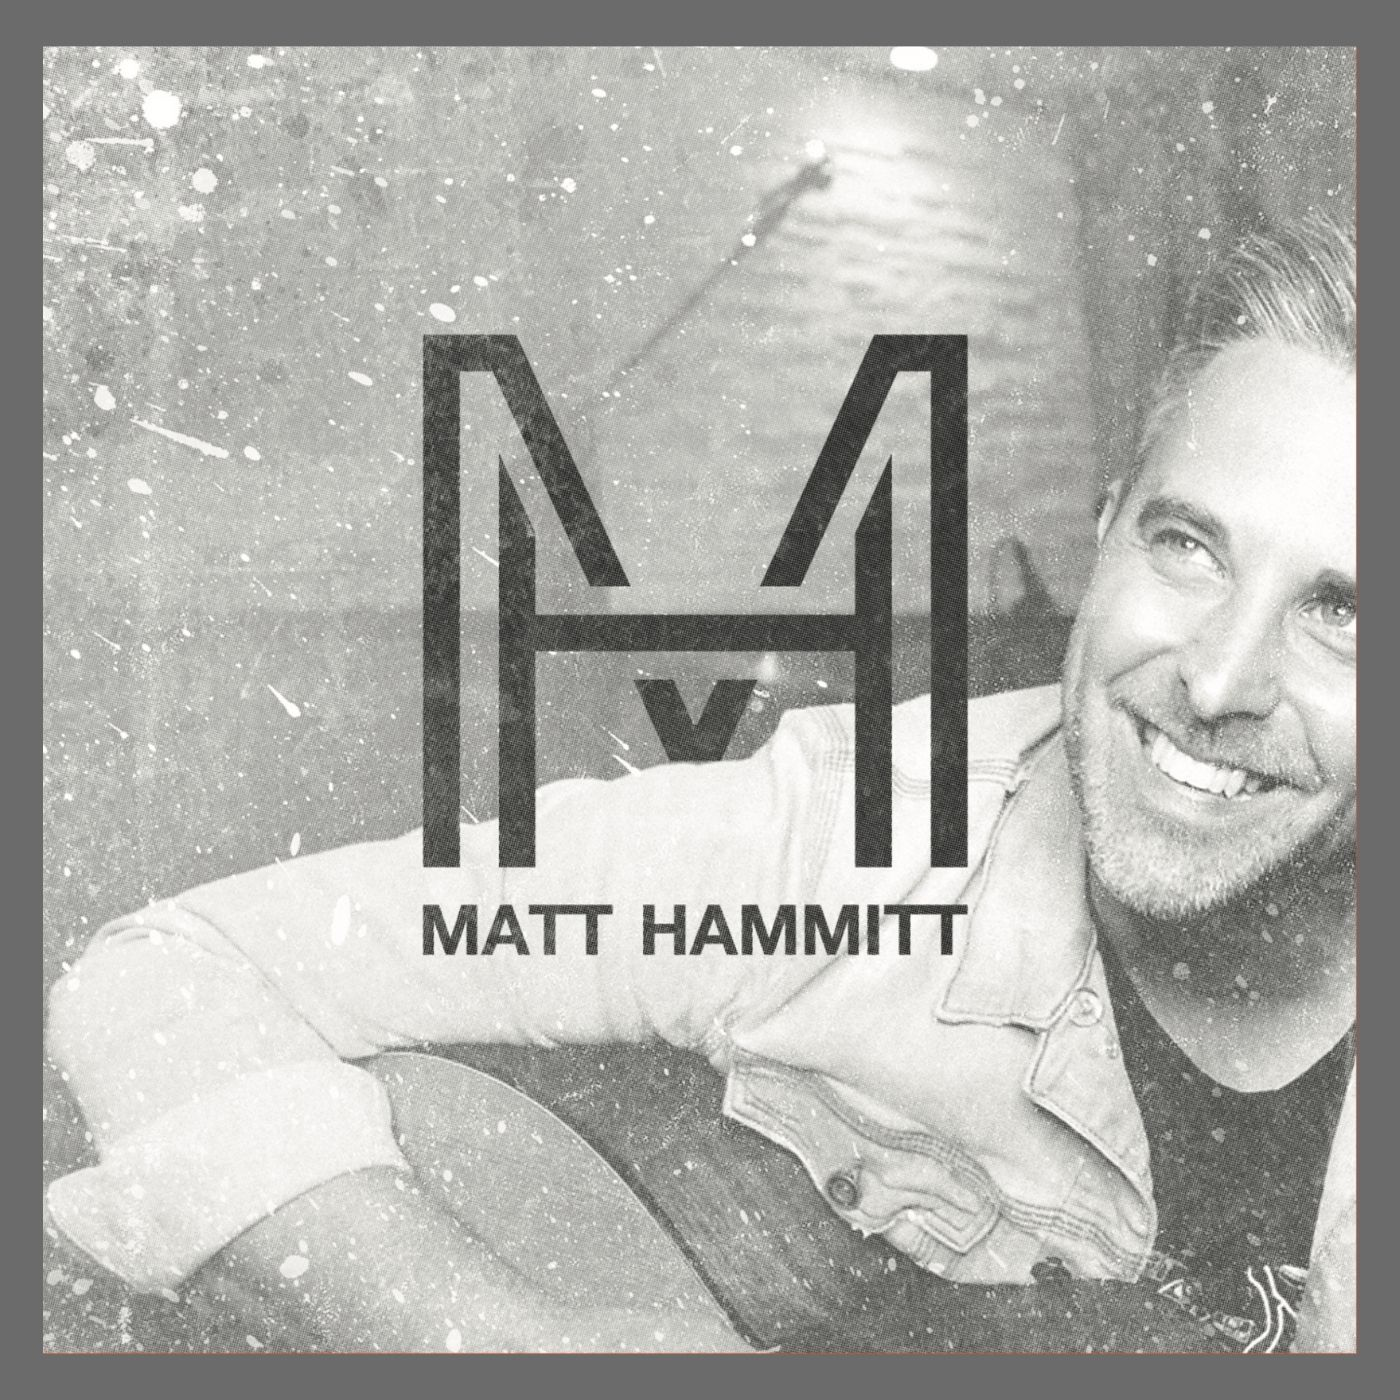 In 2017, Matt released his second solo album in partnership with Grammy Award Winning producer, Seth Mosley, and Full Circle Music.